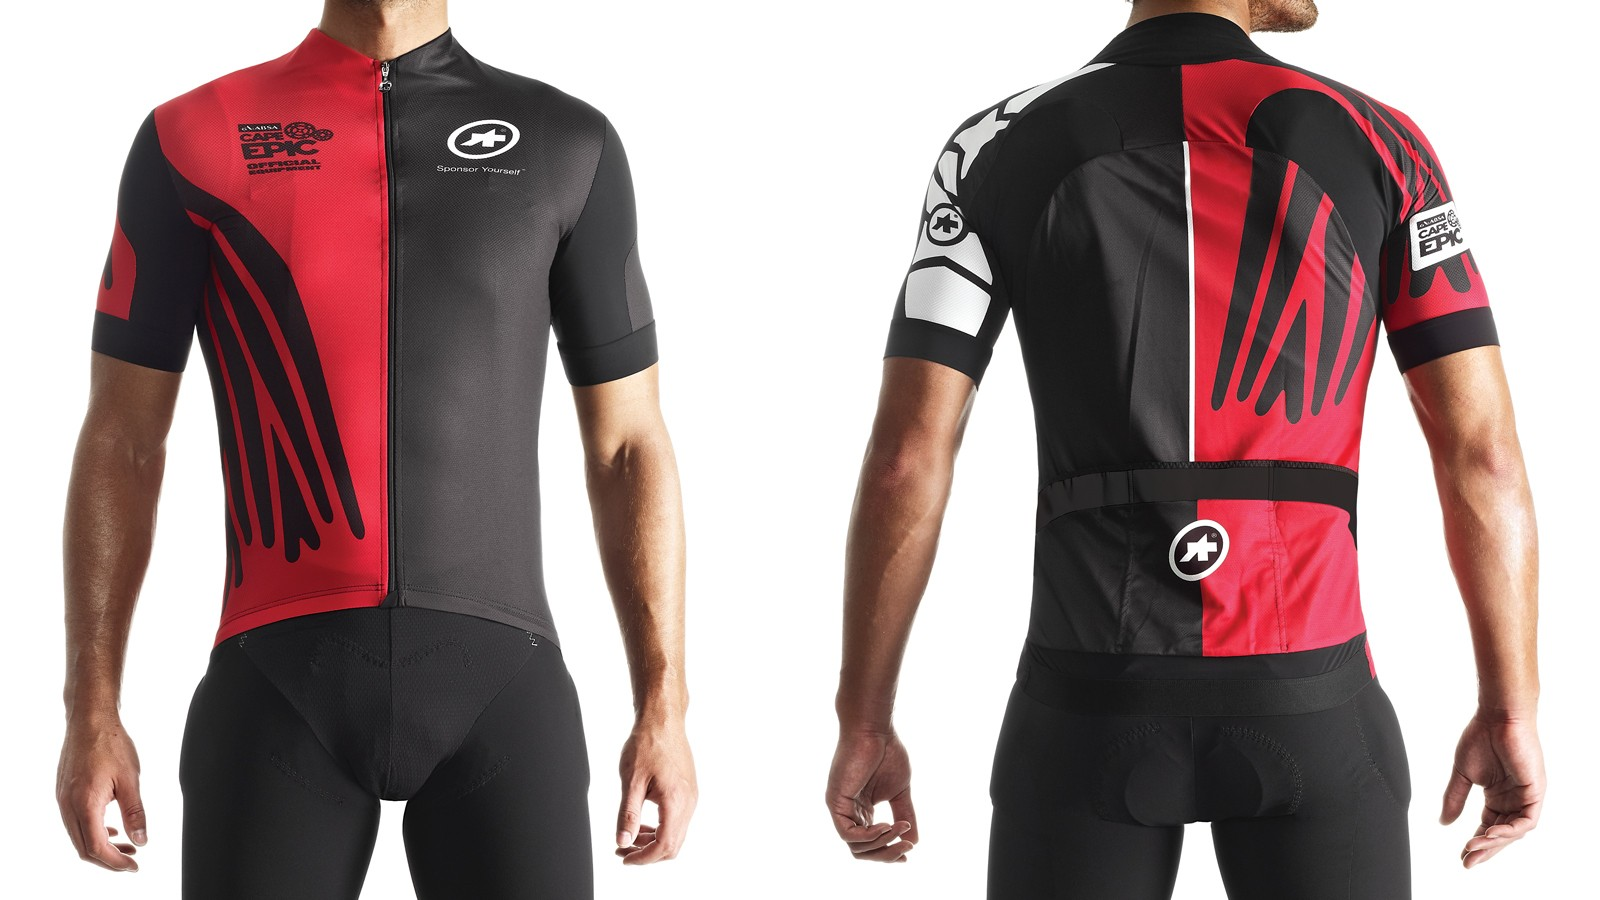 The Assos SS.Cape_EpicXCJersey_Evo7 is slightly less complicated and slightly less expensive